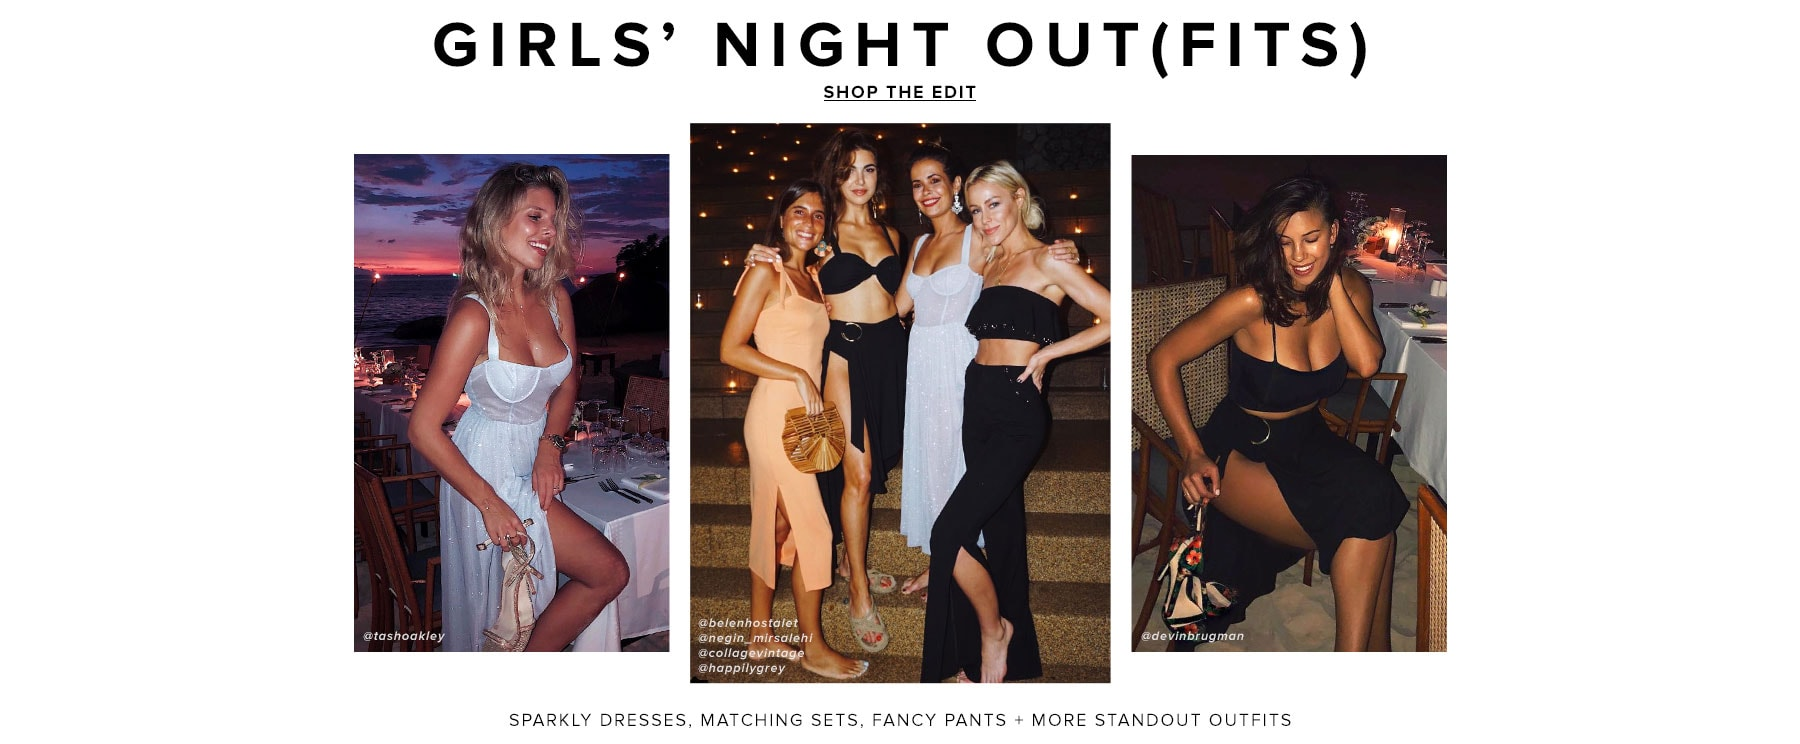 Girls' Night Outfits. Sparkly dresses, matching sets, fancy pants + more standout outfits. Shop the Edit.